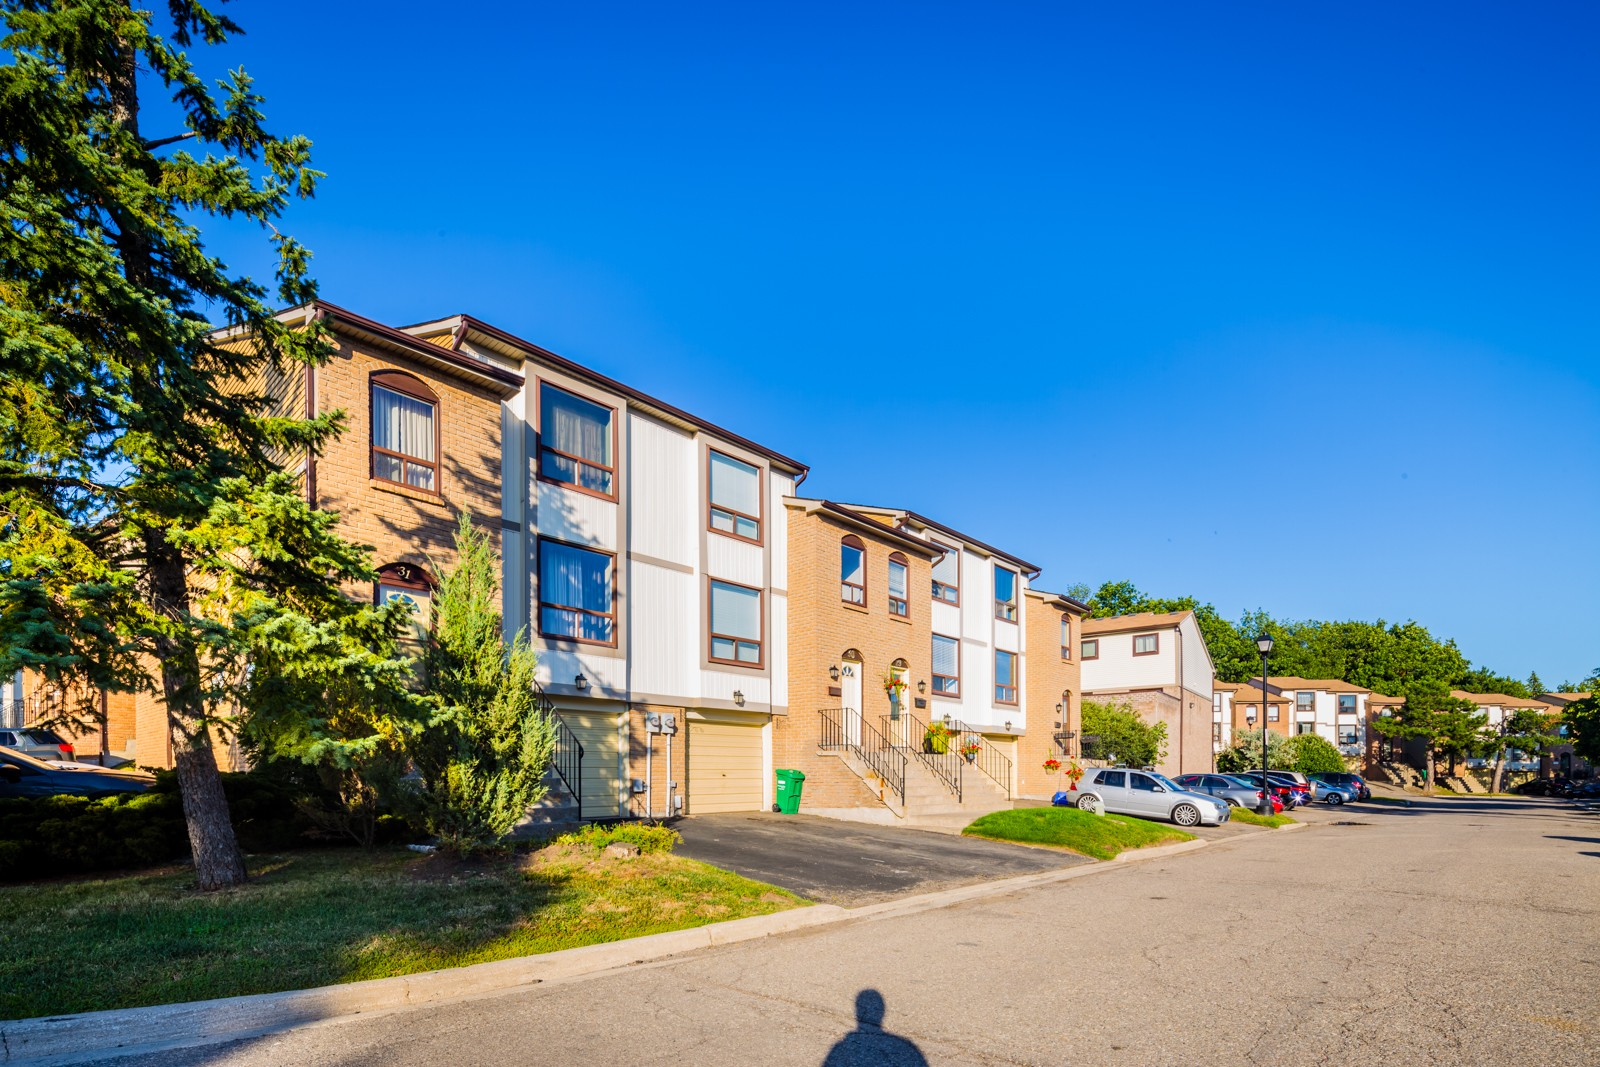 22 Mcmullen Crescent Townhouses at 22 McMullen Crescent, Brampton 0